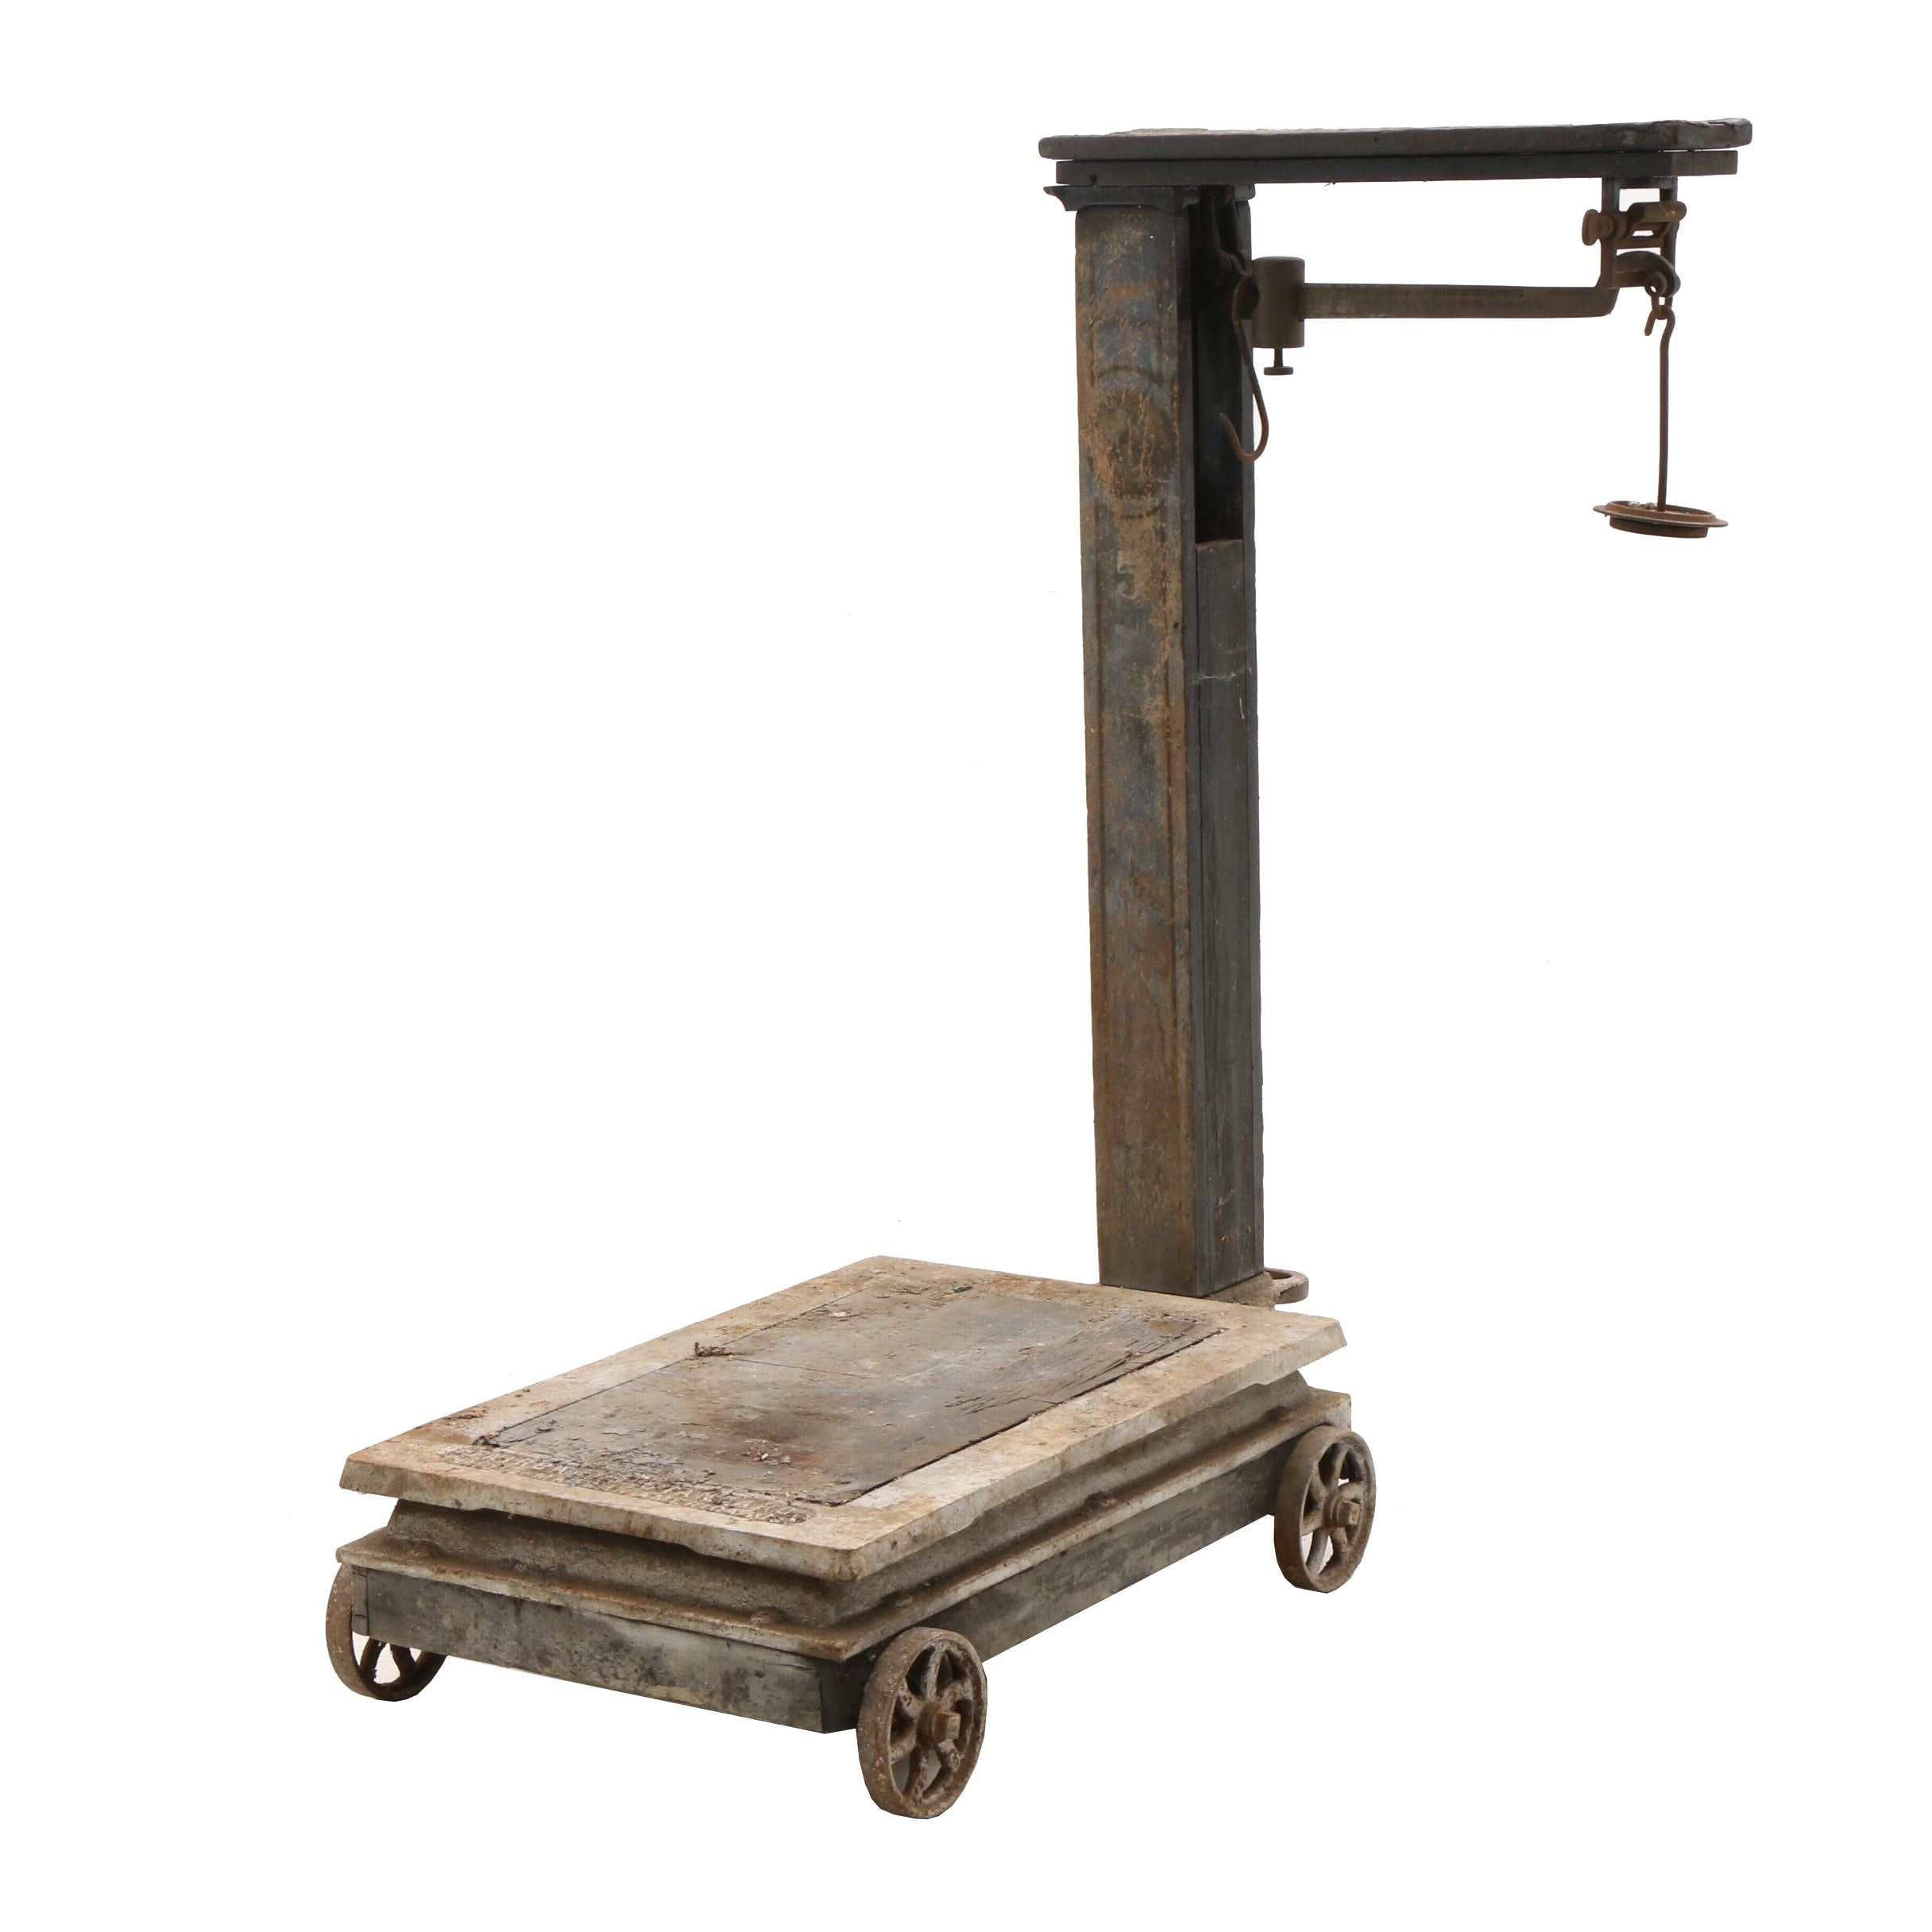 Early 1900s Fairbanks Standard Industrial Scale